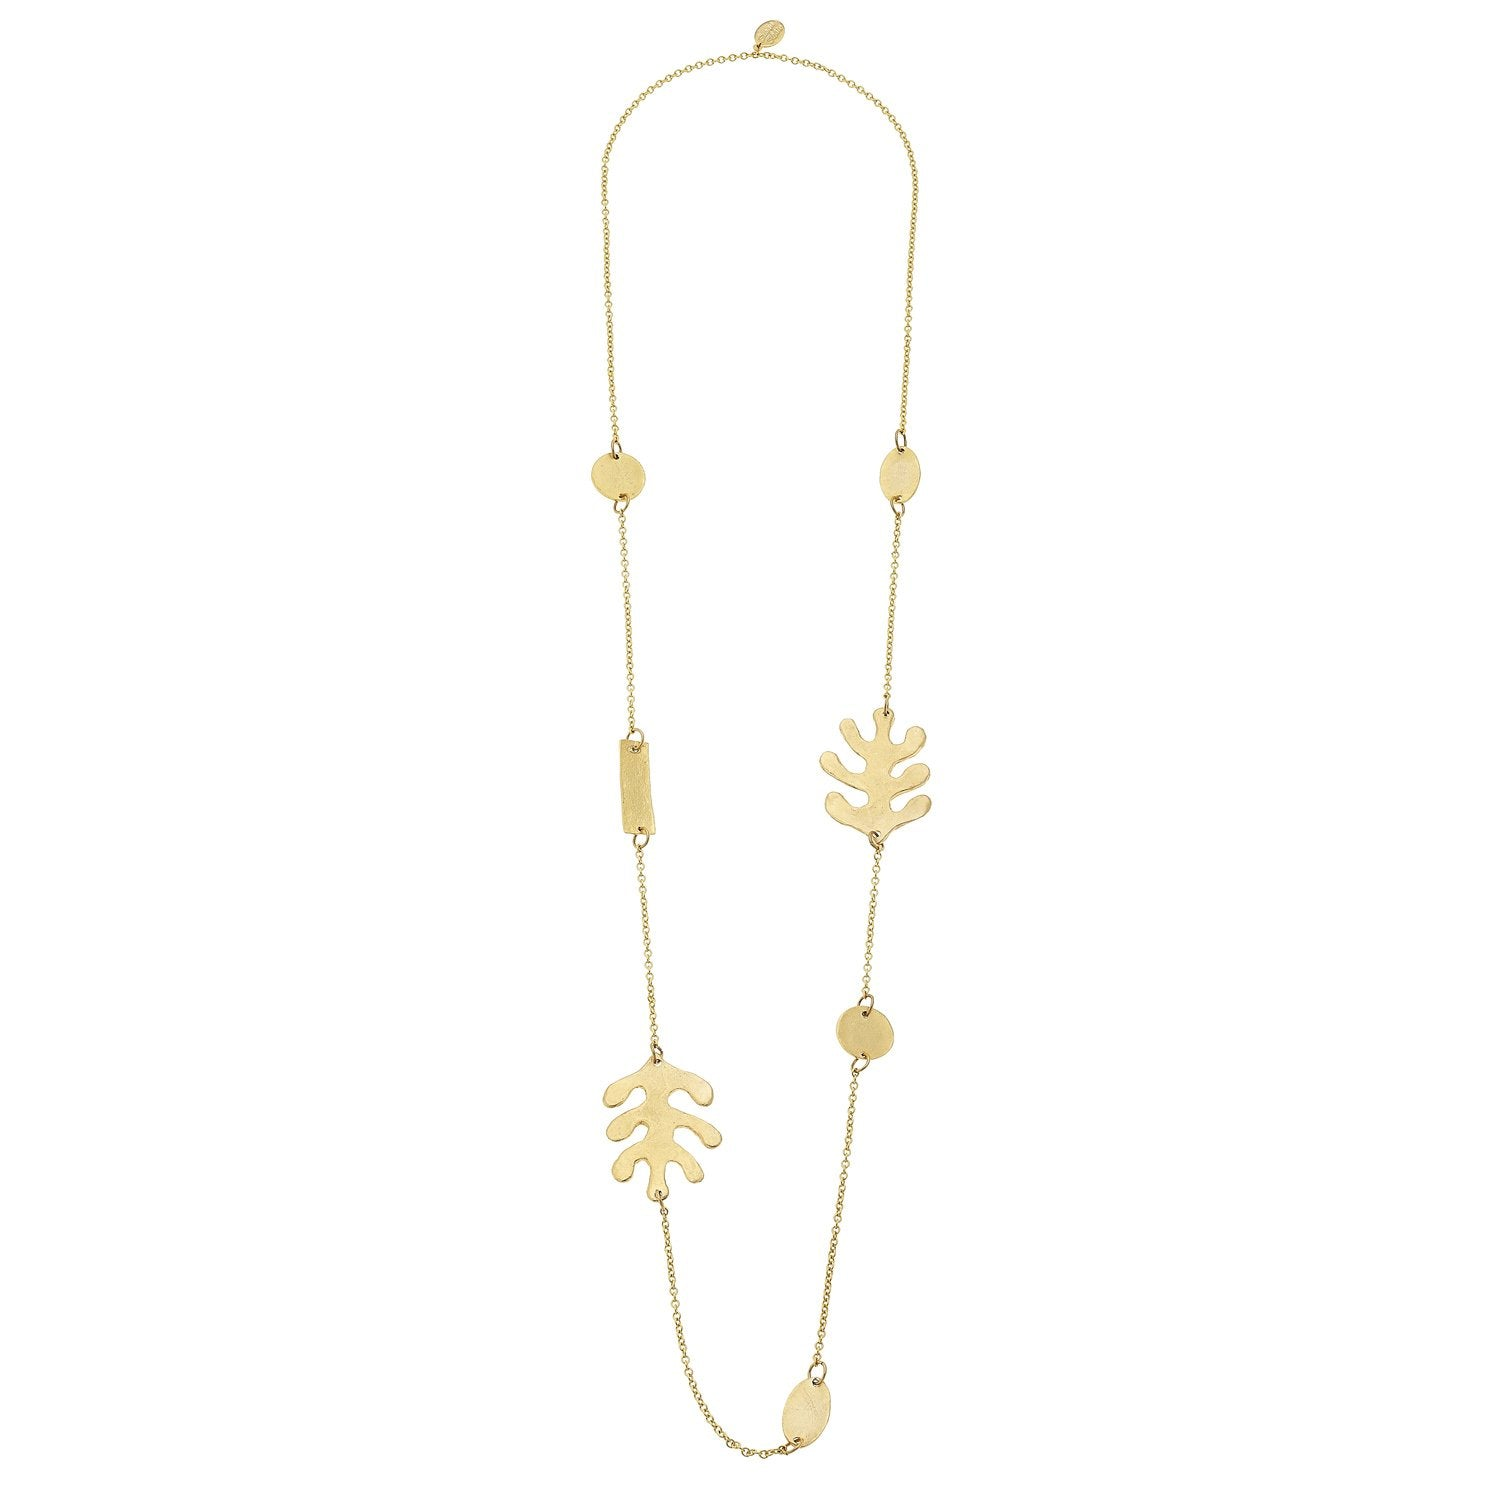 Susan Shaw Handcast 24Kt Gold Plated Matisse Inspired Leaf Necklace